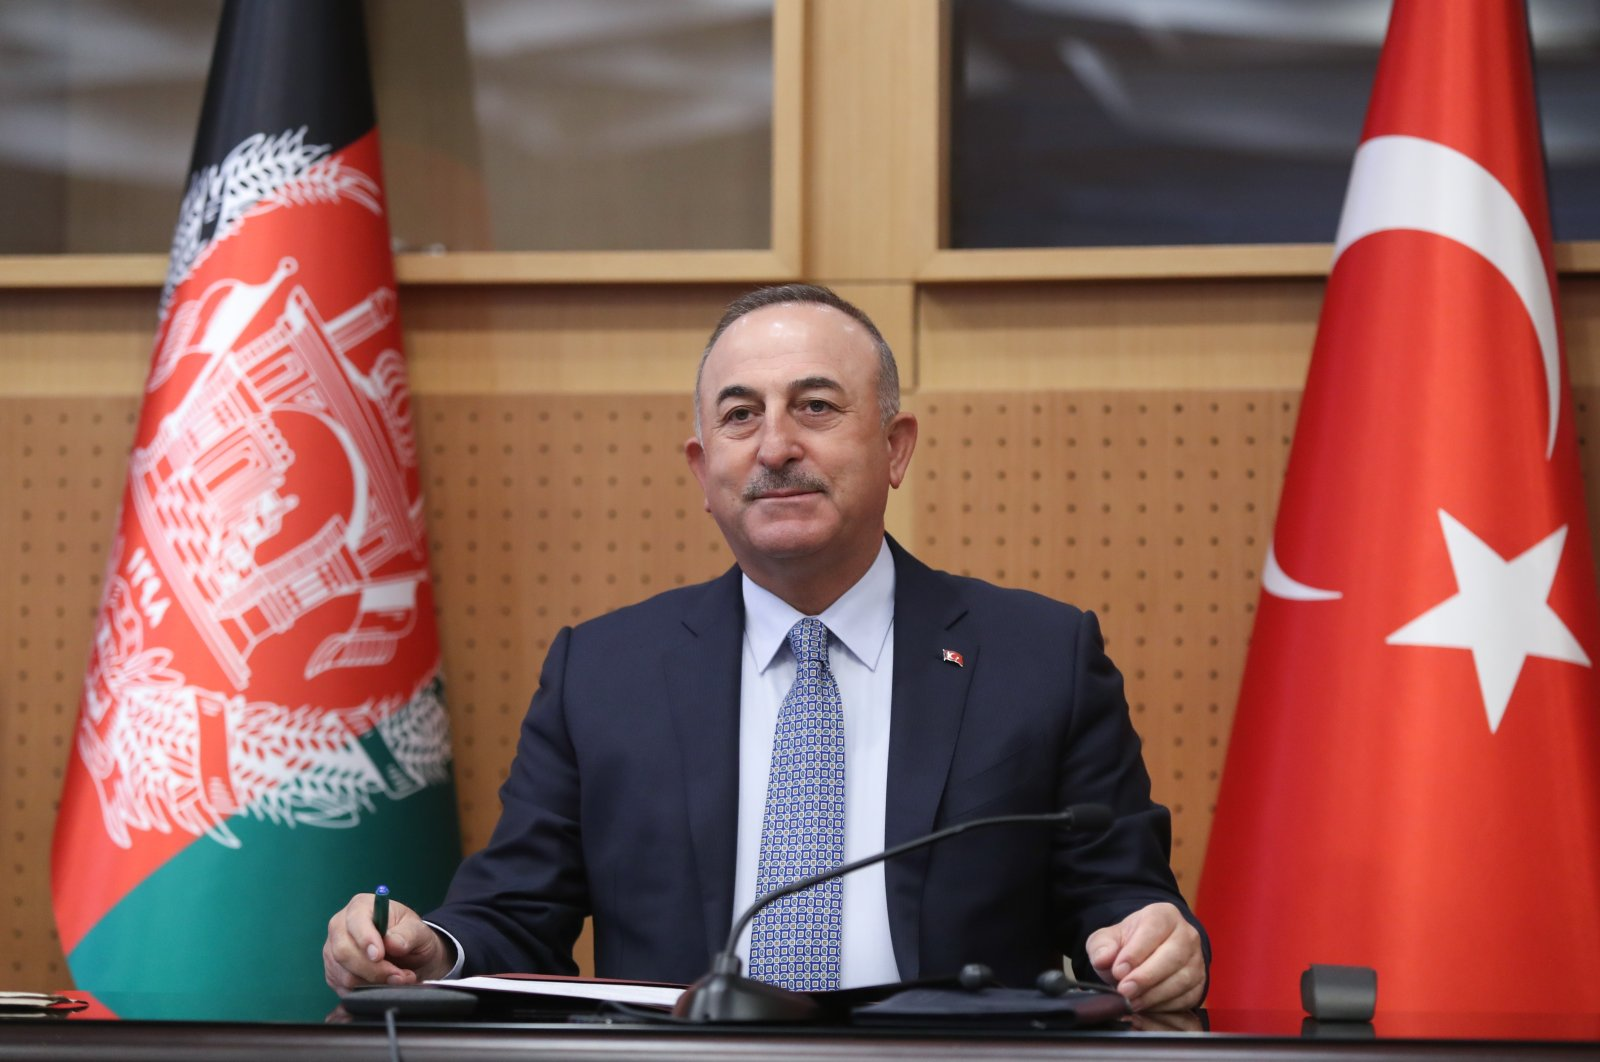 Foreign Minister Mevlüt Çavuşoğlu virtually addresses a ceremony to mark the 100th anniversary of diplomatic relations between the two countries, in the capital Kabul, Afghanistan, March 1, 2021. (AA Photo)